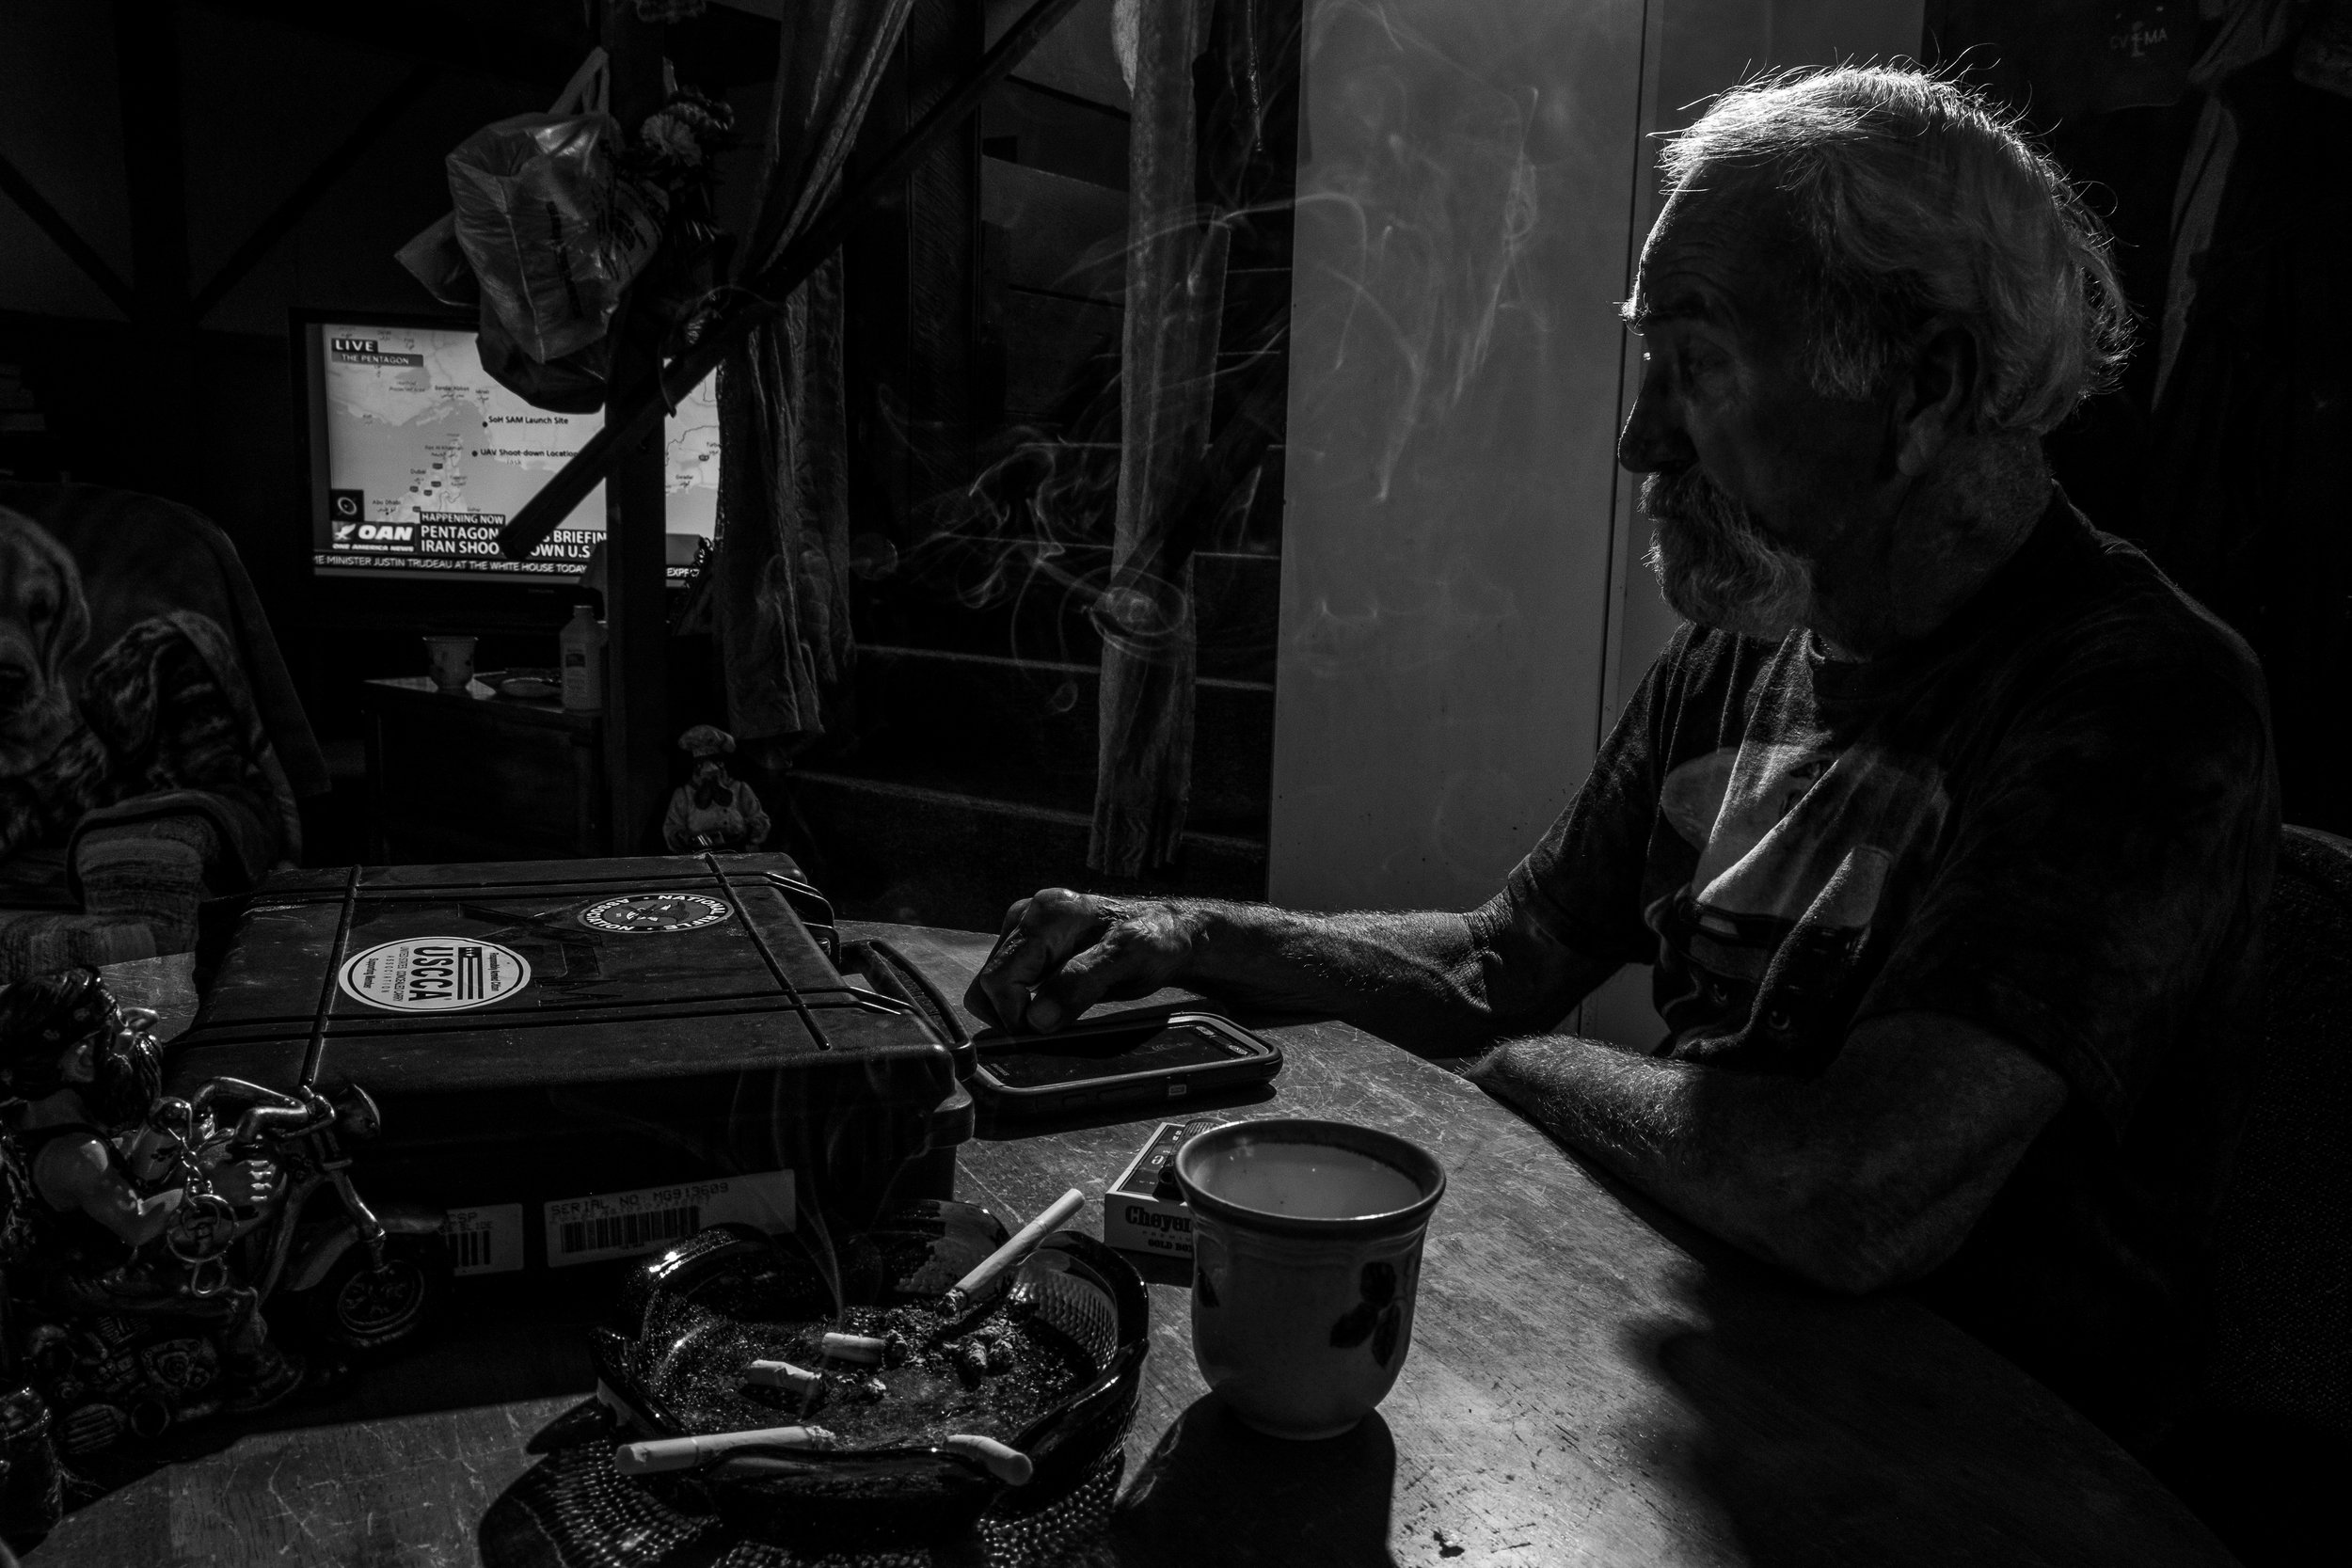 Marine Corp veteran and Patriot Guard Senior Ride Captain, Bill Walden, smokes a cigarette in his home on Thursday, Jun. 20, 2019. Walden served 12 years in the USMC in crash, fire, and rescue and served a tour at Khe Sanh in 1967 before being medically retired due to an accident in 1972.